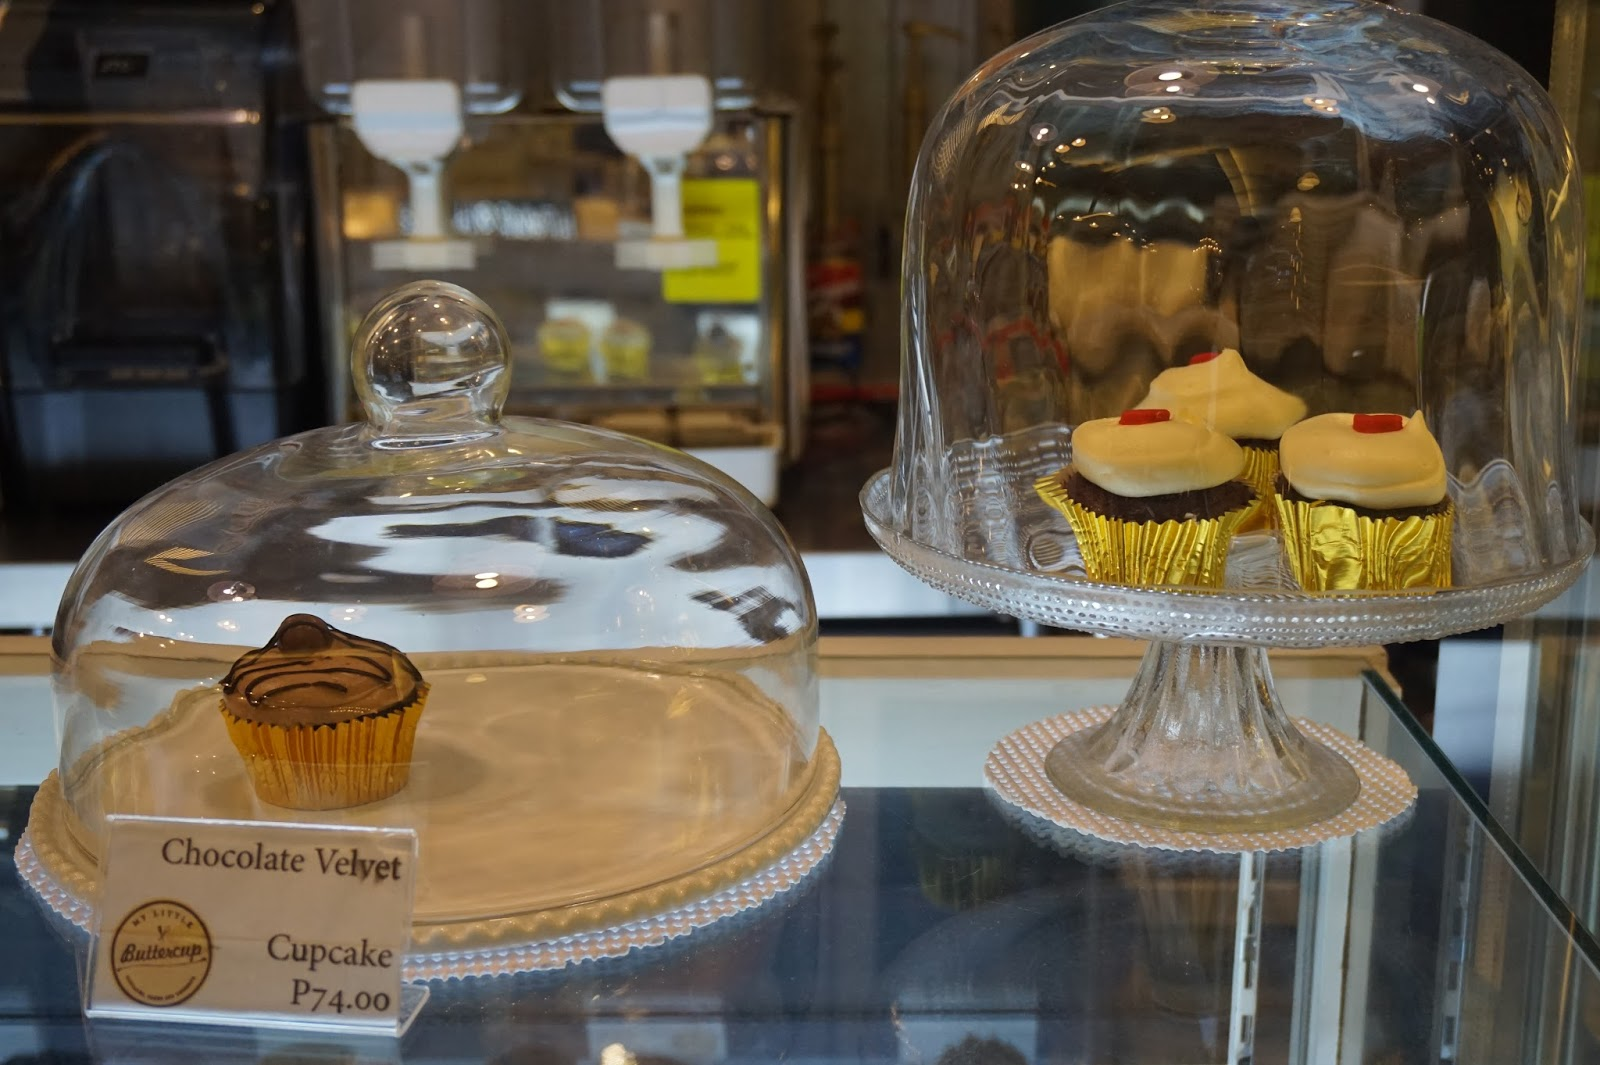 my little buttercup bakery and cafe's best seller cupcakes